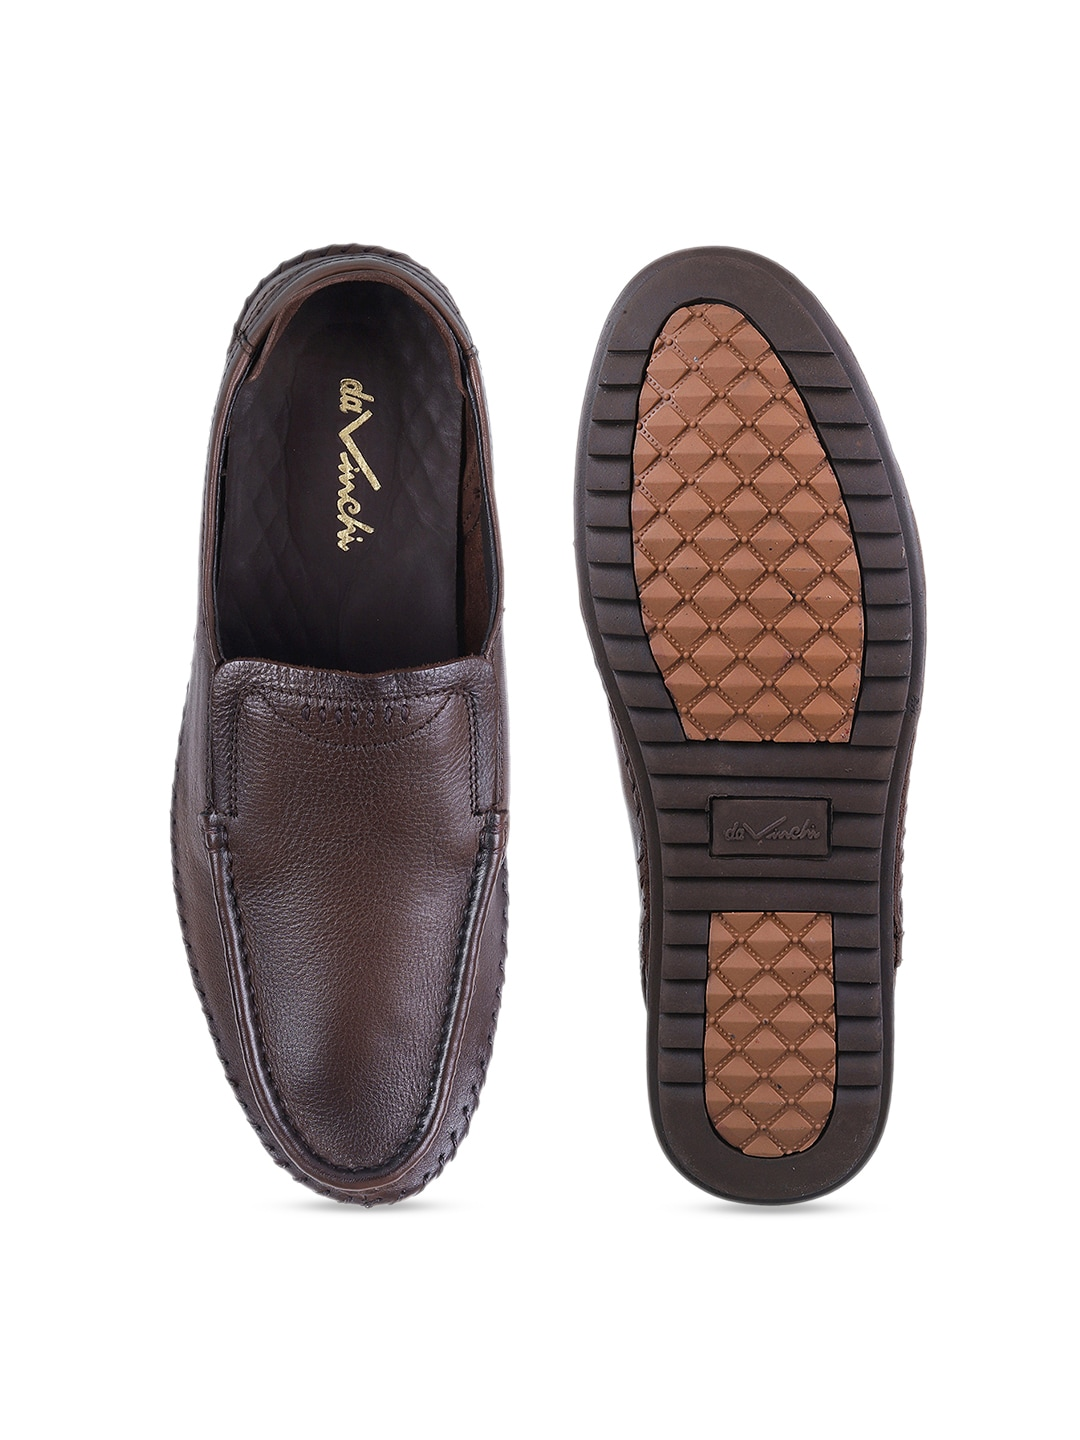 Metro Men Brown Solid Semi-Formal Leather Slip-On Shoes